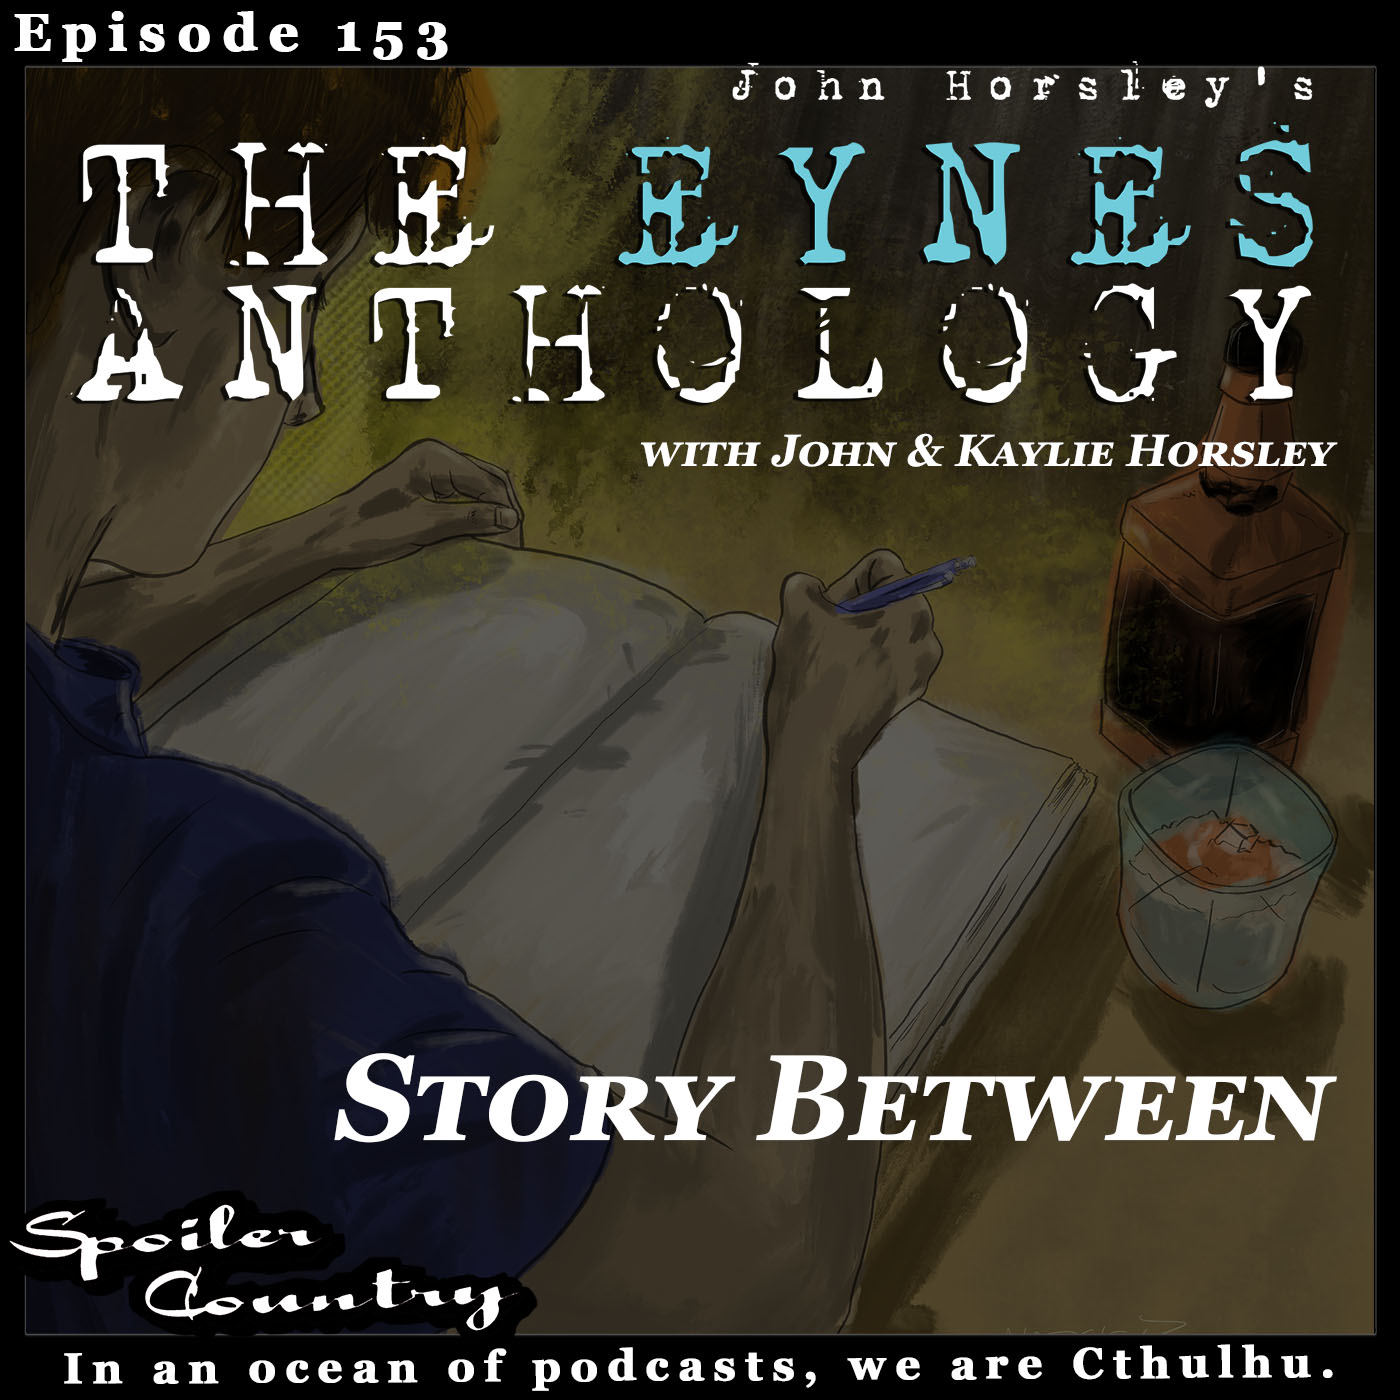 Story Between - Eynes Anthology Interview with John & Kaylie Horsley!